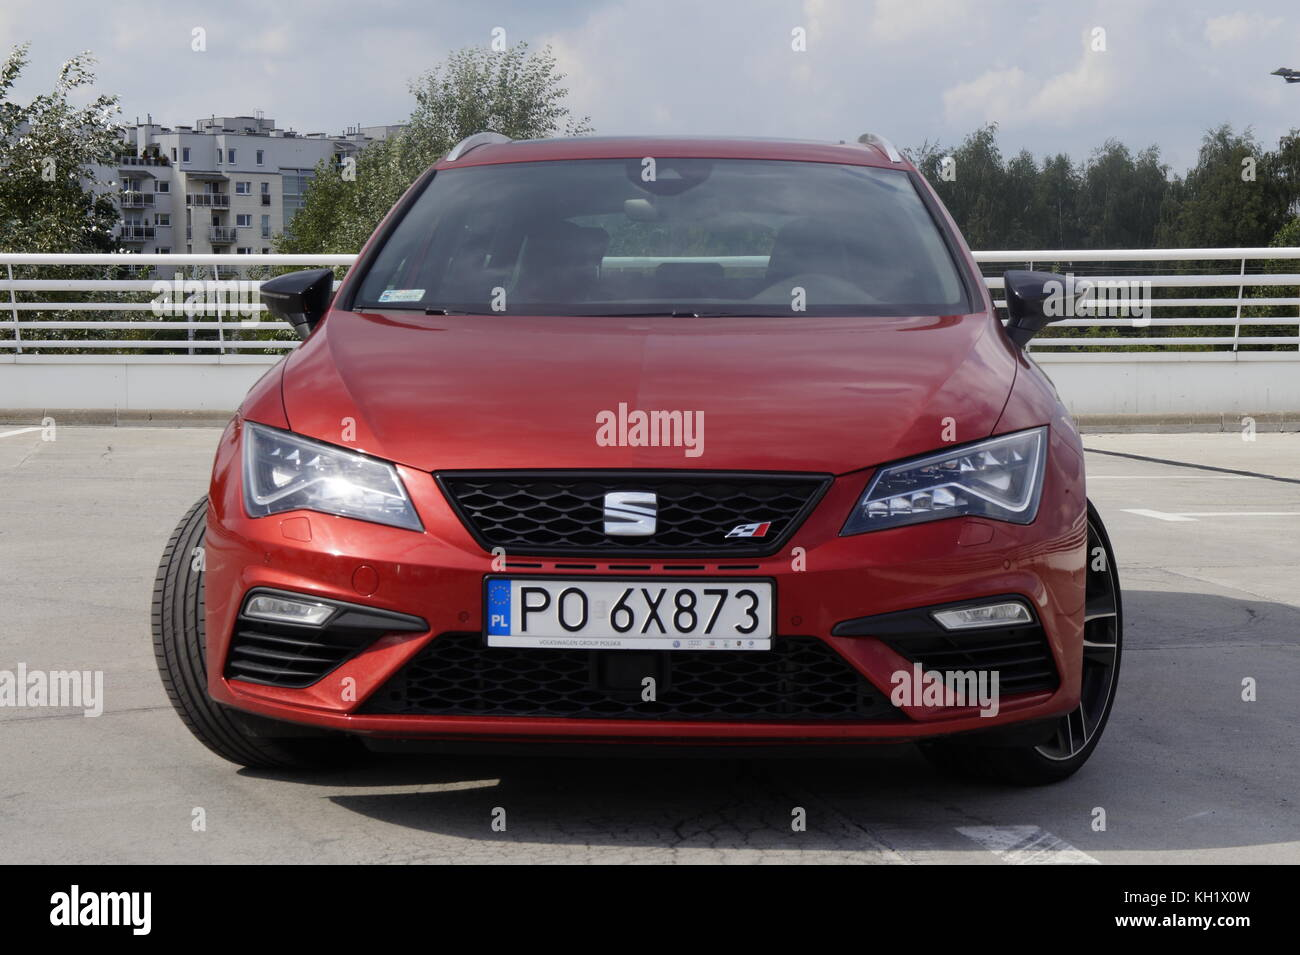 seat leon red stock photos seat leon red stock images. Black Bedroom Furniture Sets. Home Design Ideas